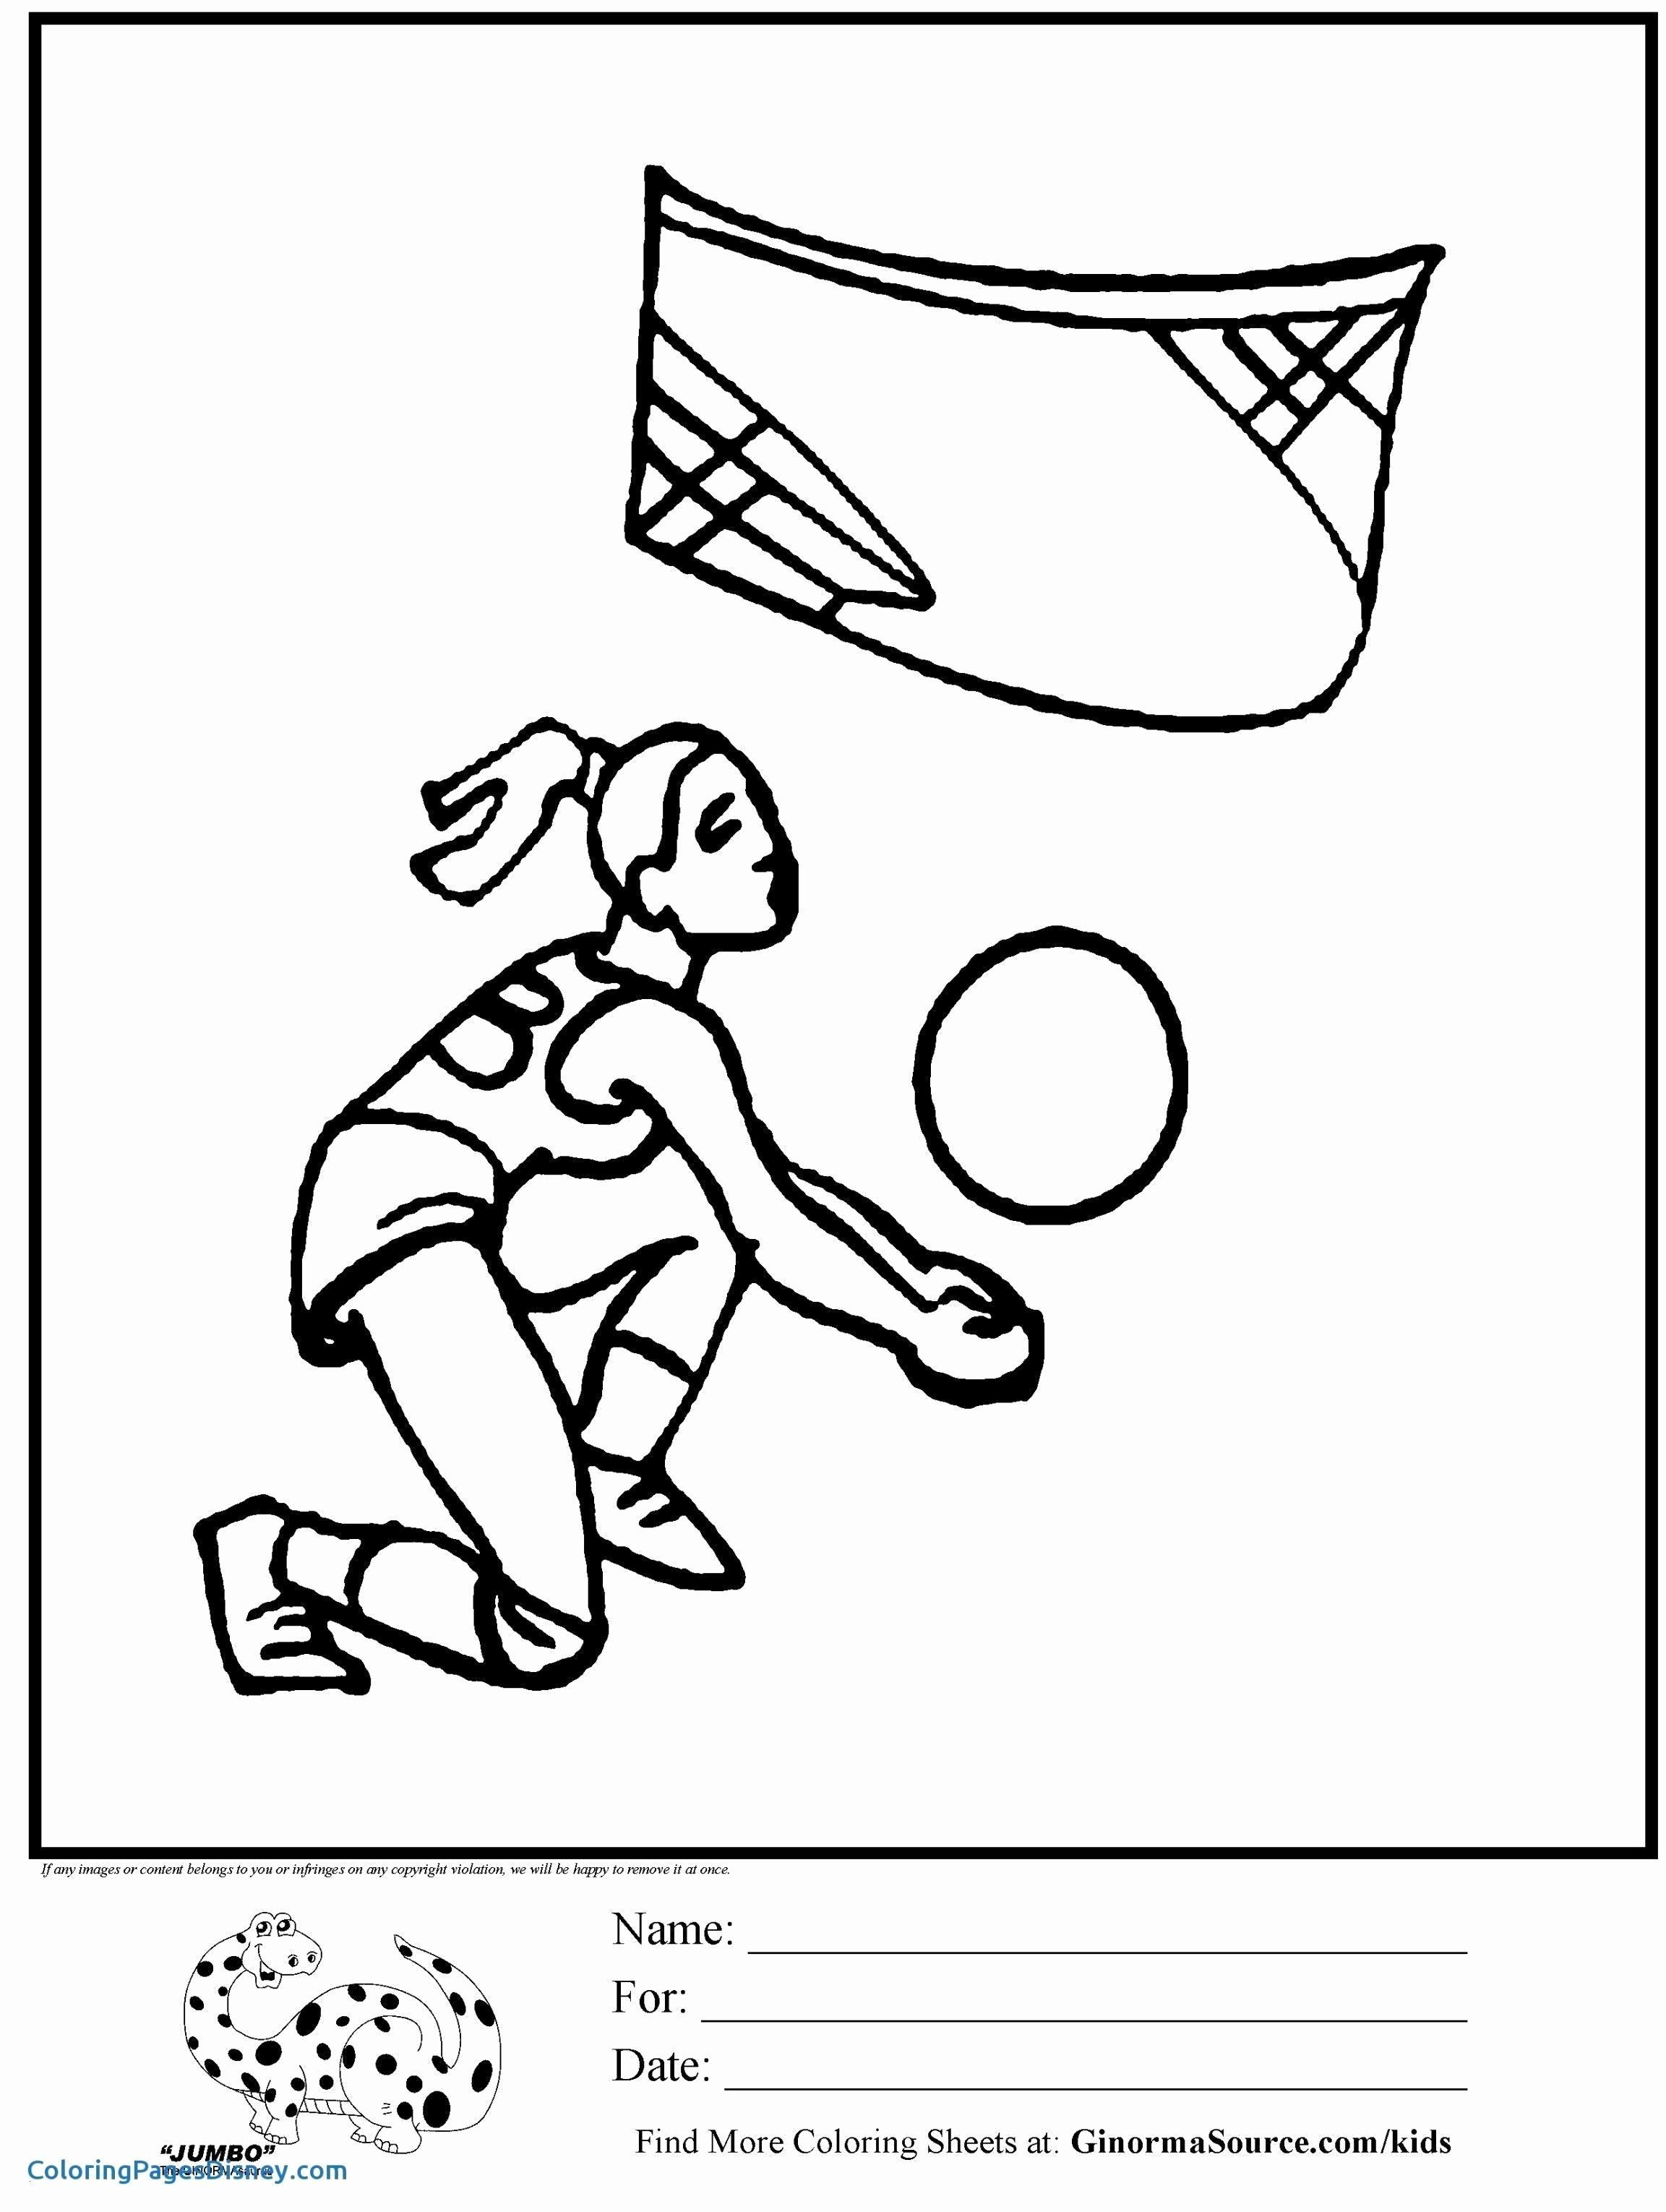 Coloring Page Of A Face New Luxury Human Leg Coloring Pages Nocn